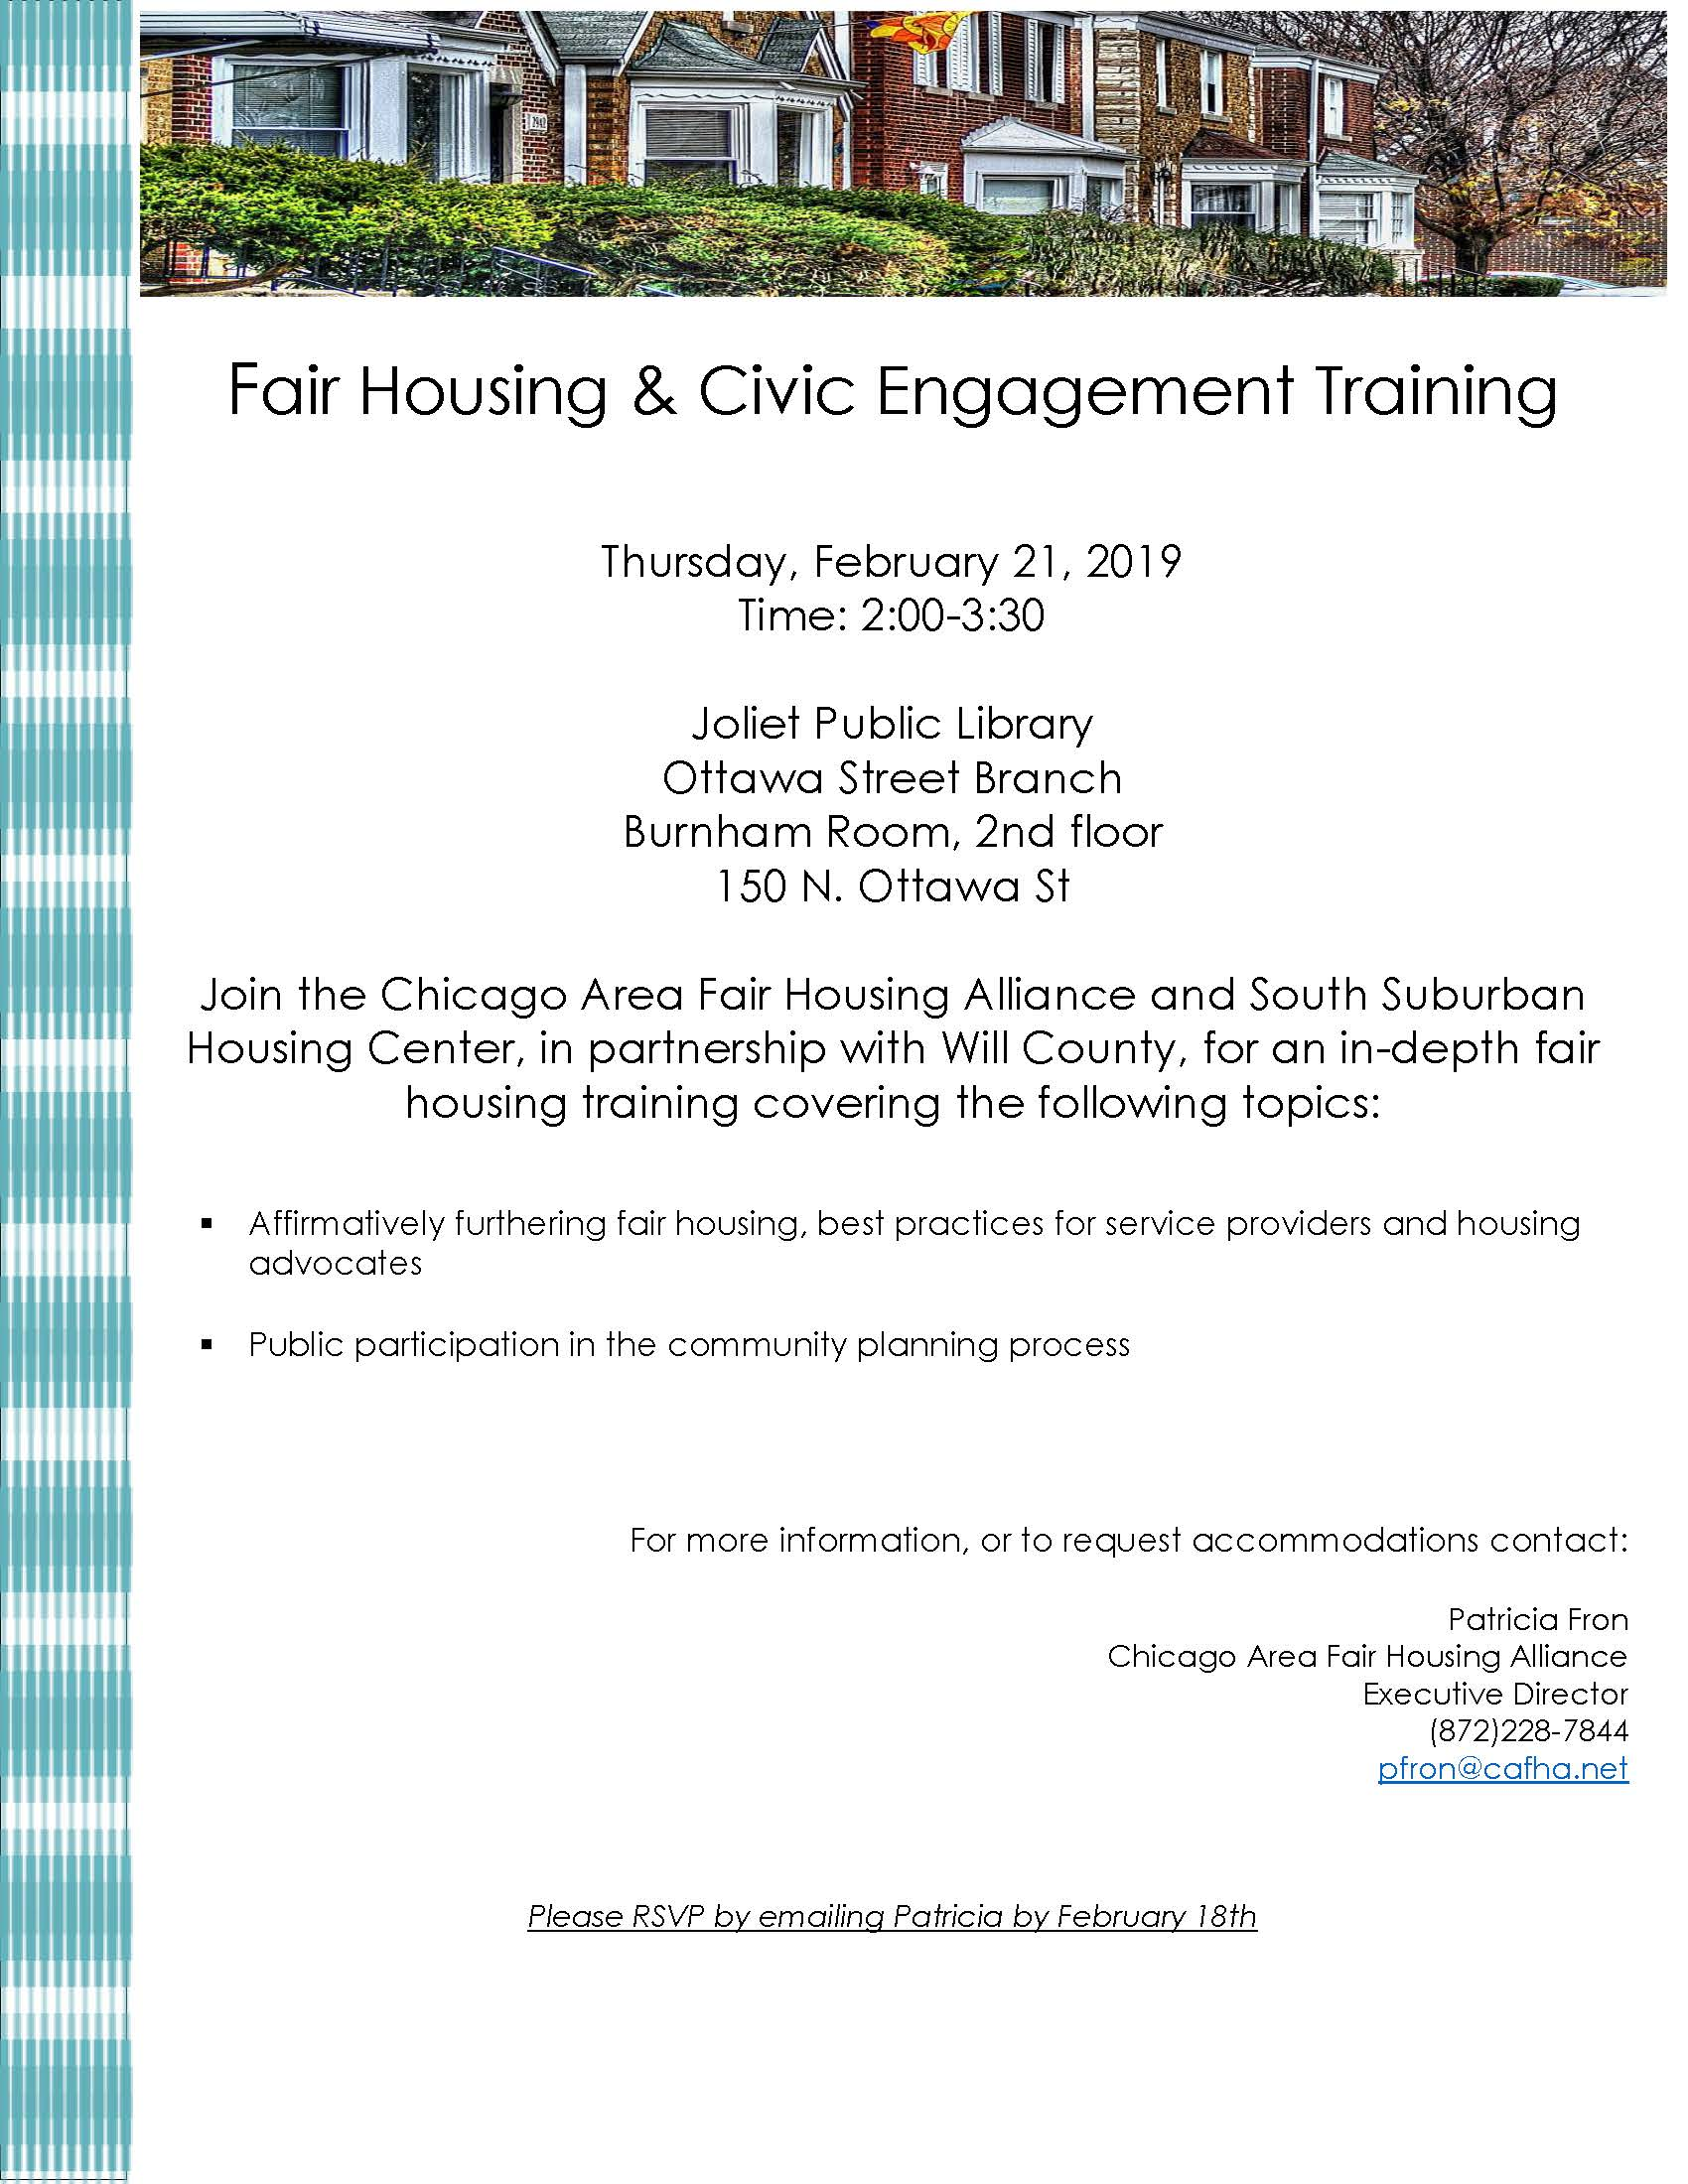 Fair Housing & Civic Engagement Training Flyer